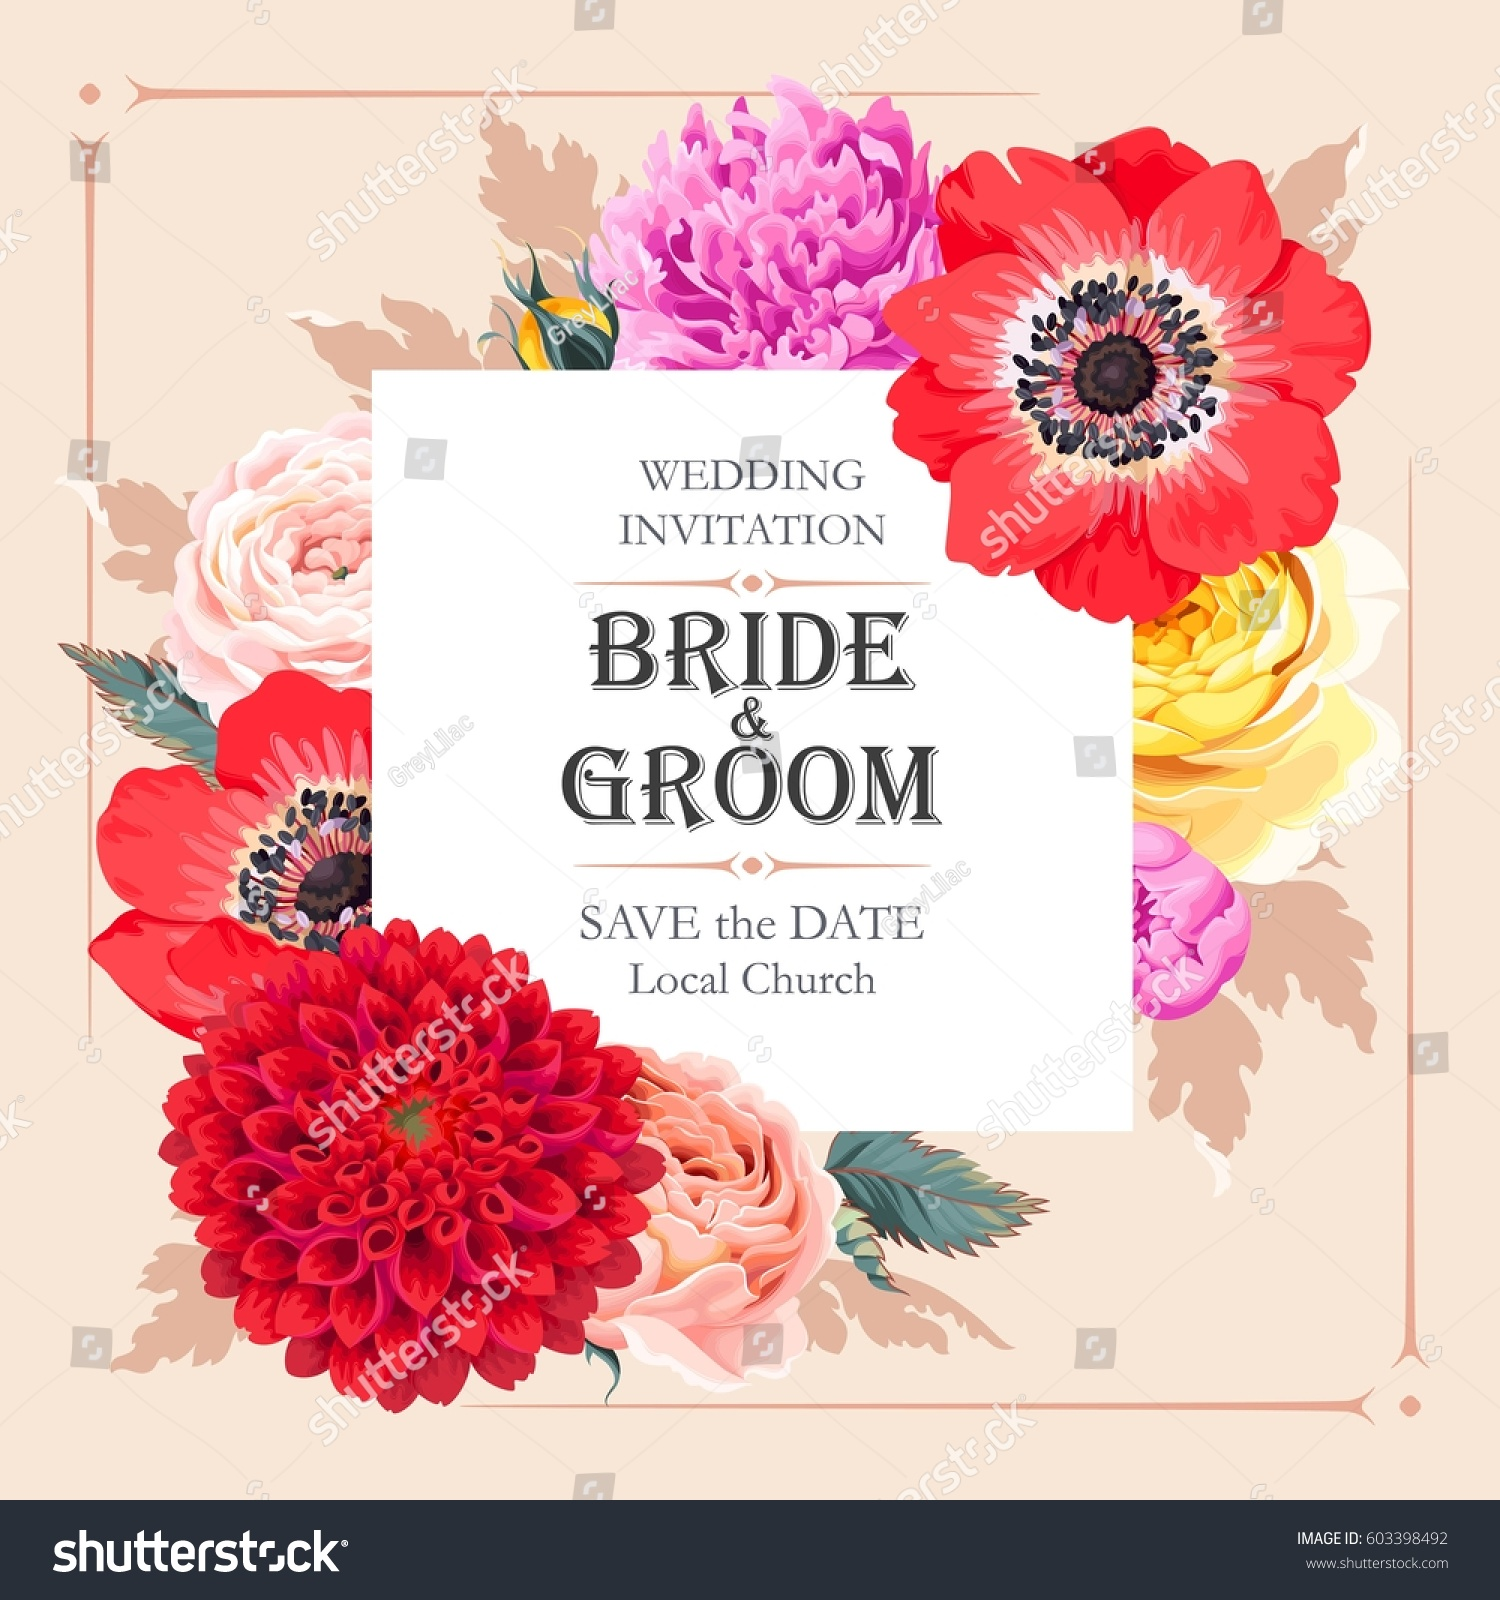 Vector Wedding Invitation High Detailed Flowers Stock Vector HD ...